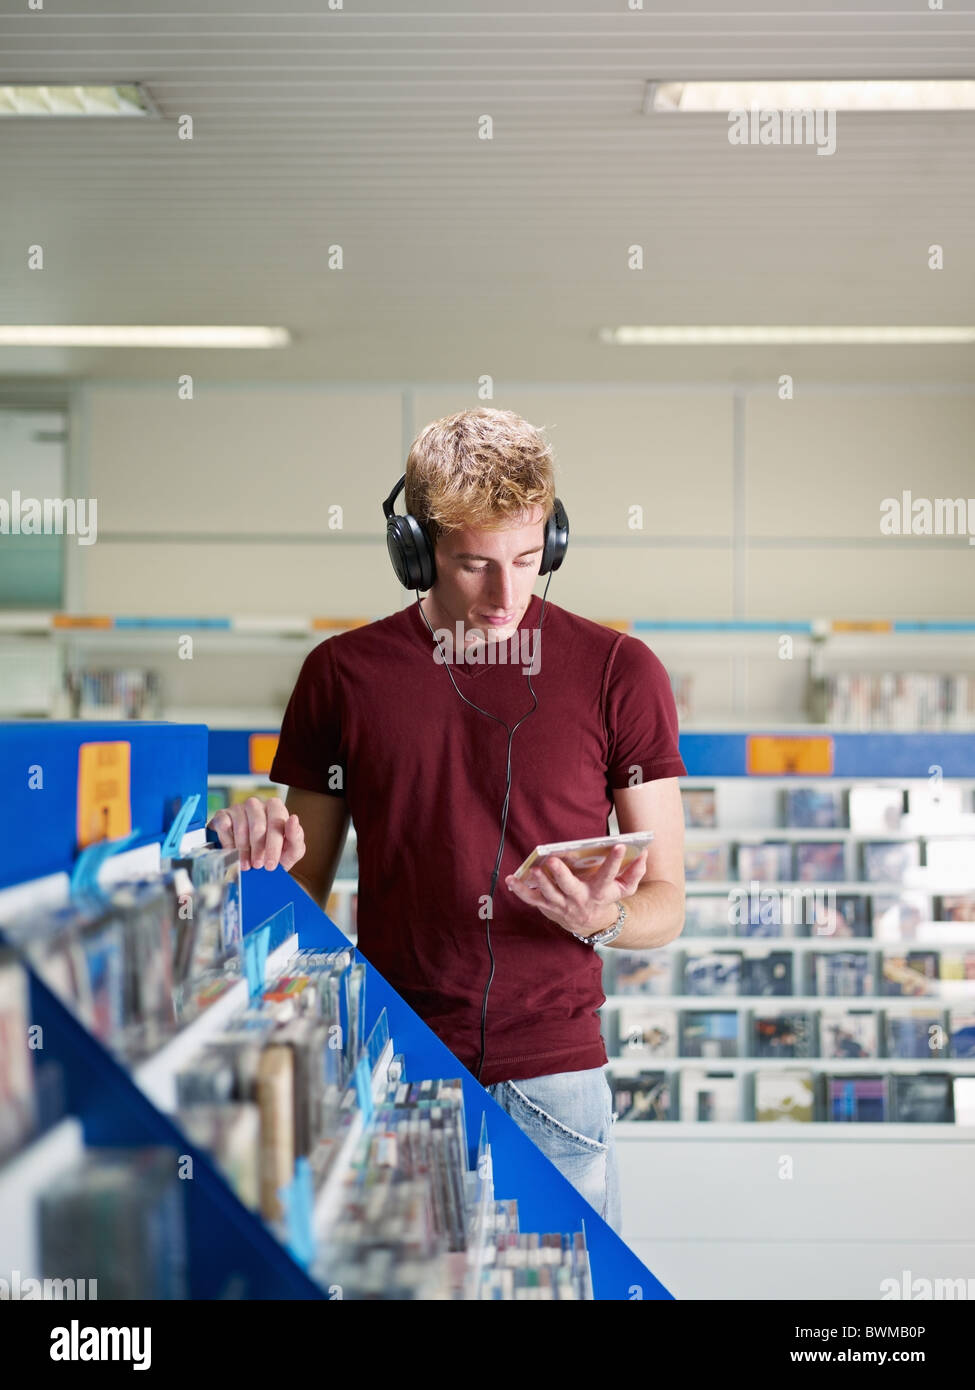 caucasian man with headphones, choosing cd in music shop. Vertical shape, front view, waist up, copy space - Stock Image